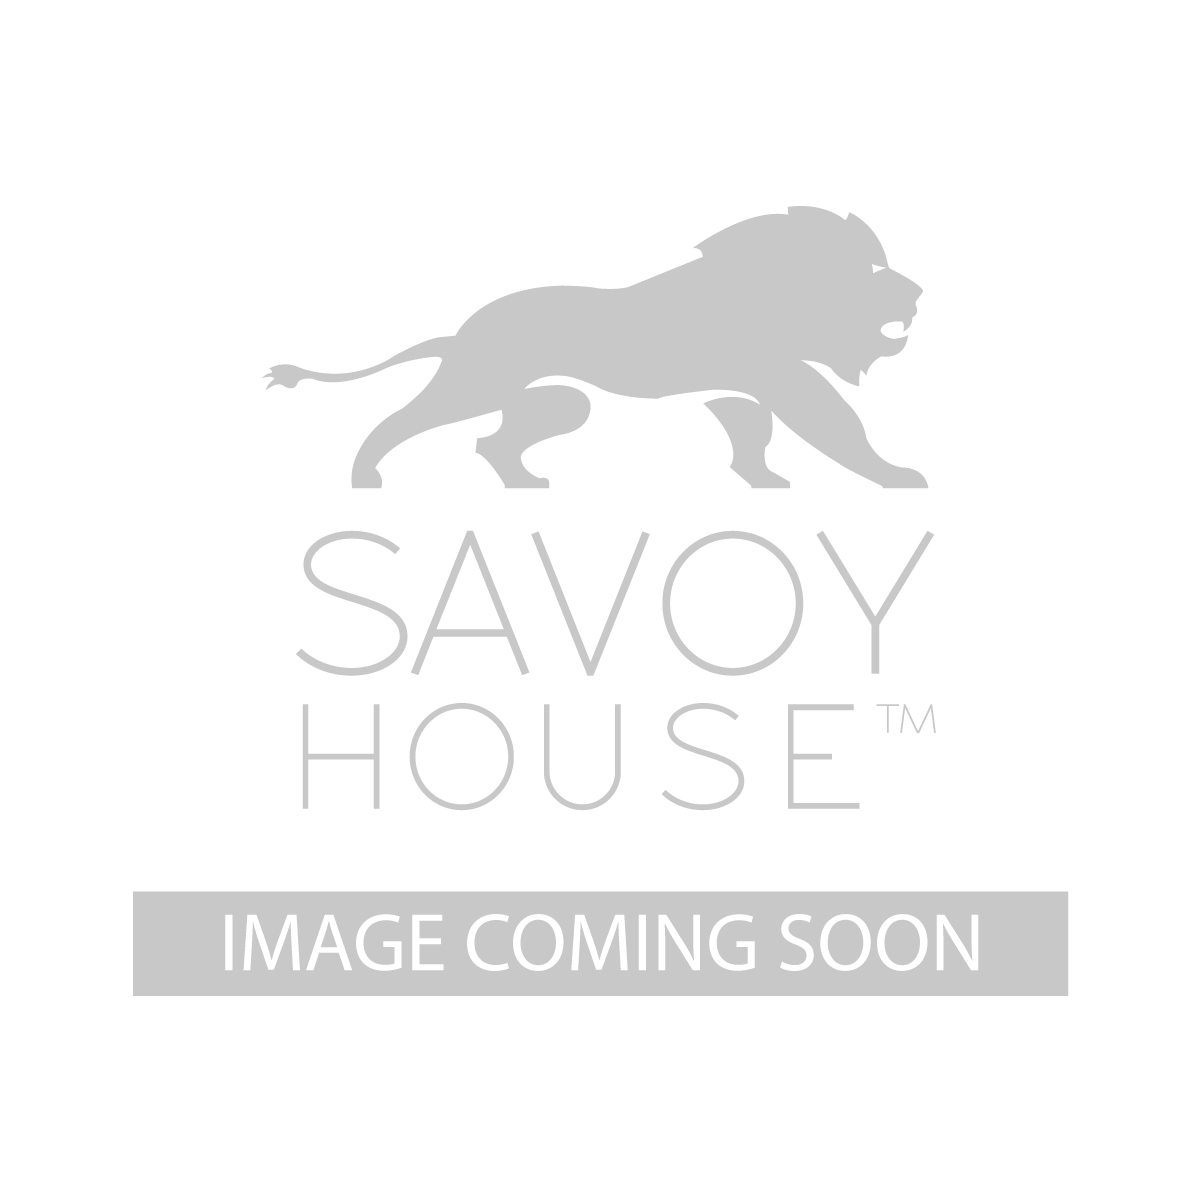 48-952-ca-13 circulaire discus 3 headed ceiling fansavoy house Candle Ceiling Fan